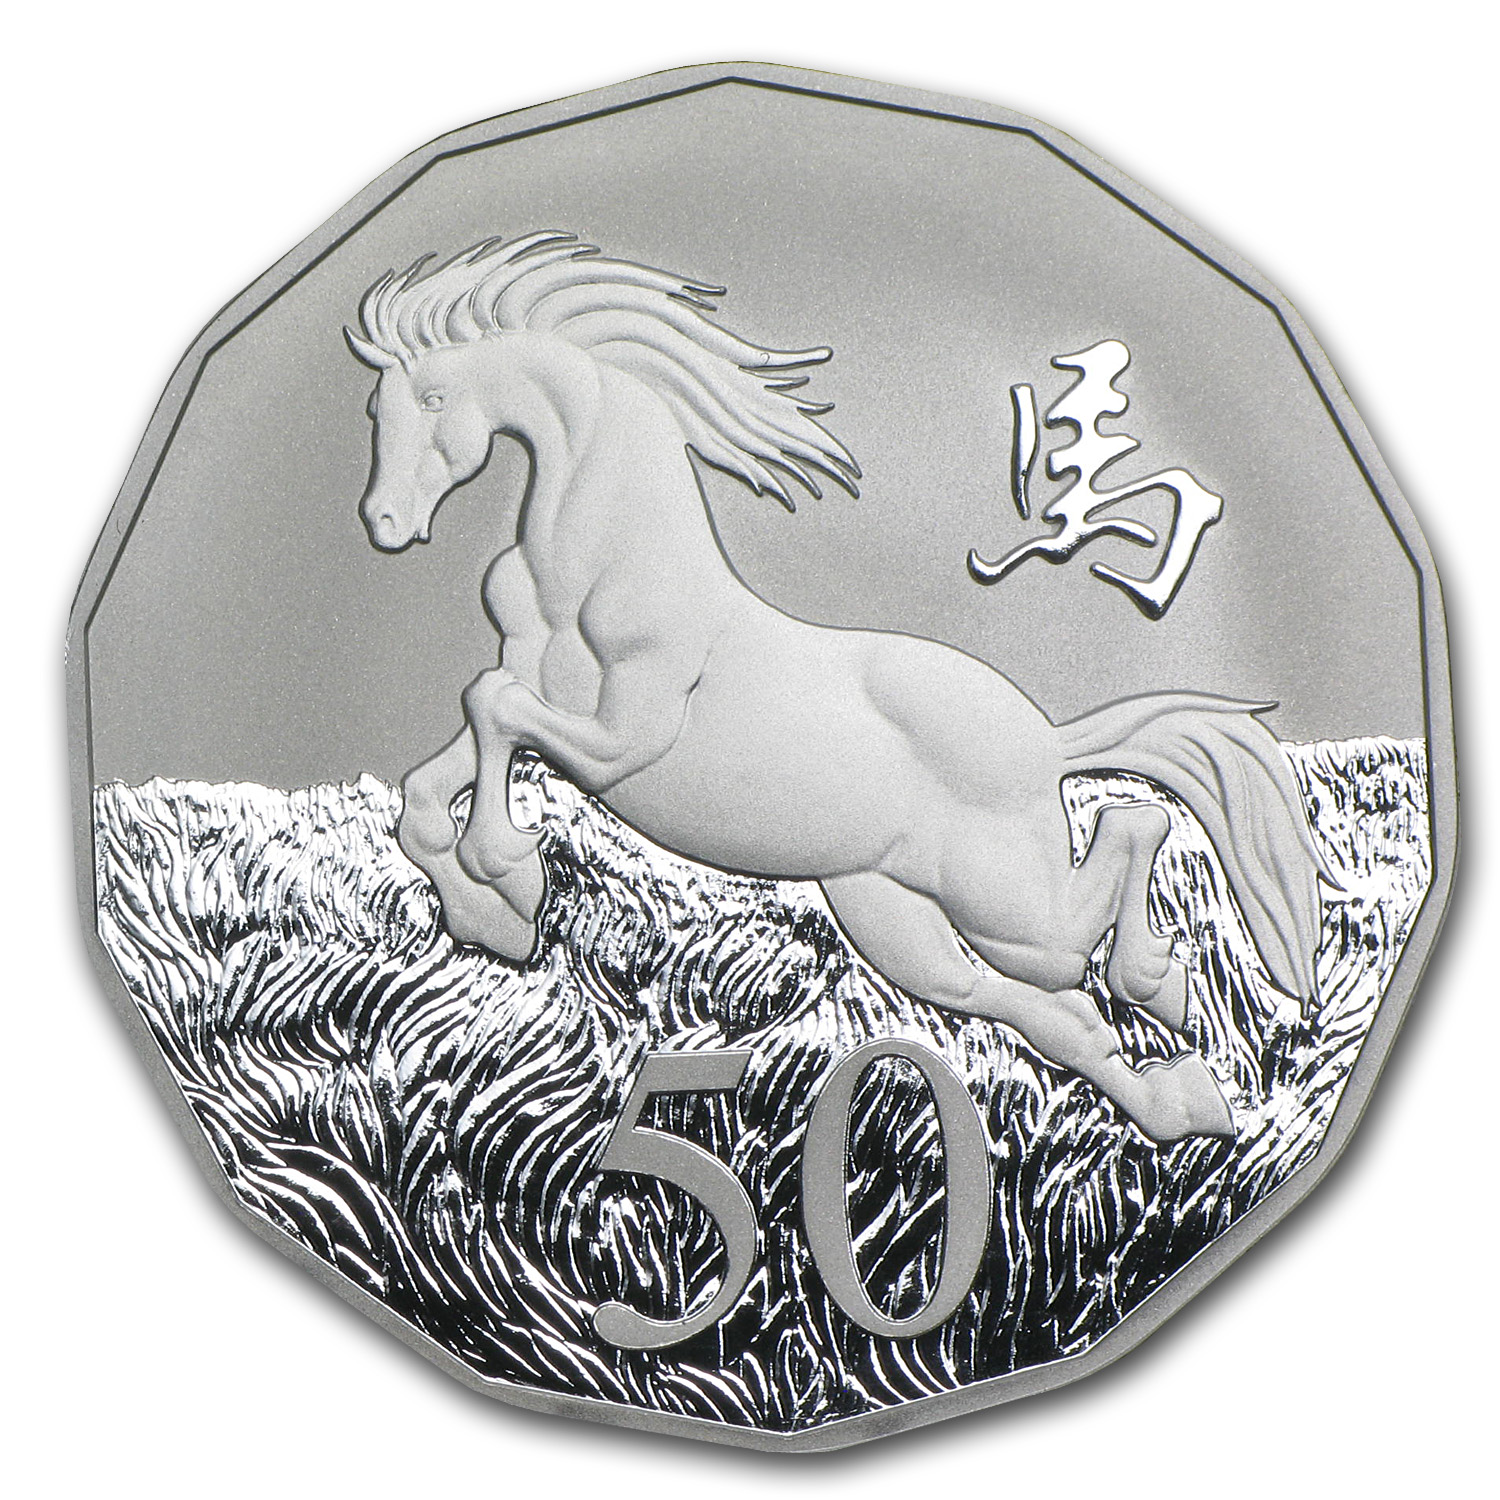 2014 Tetra-decagon Lunar Year of the Horse 1/2 oz Silver Coin